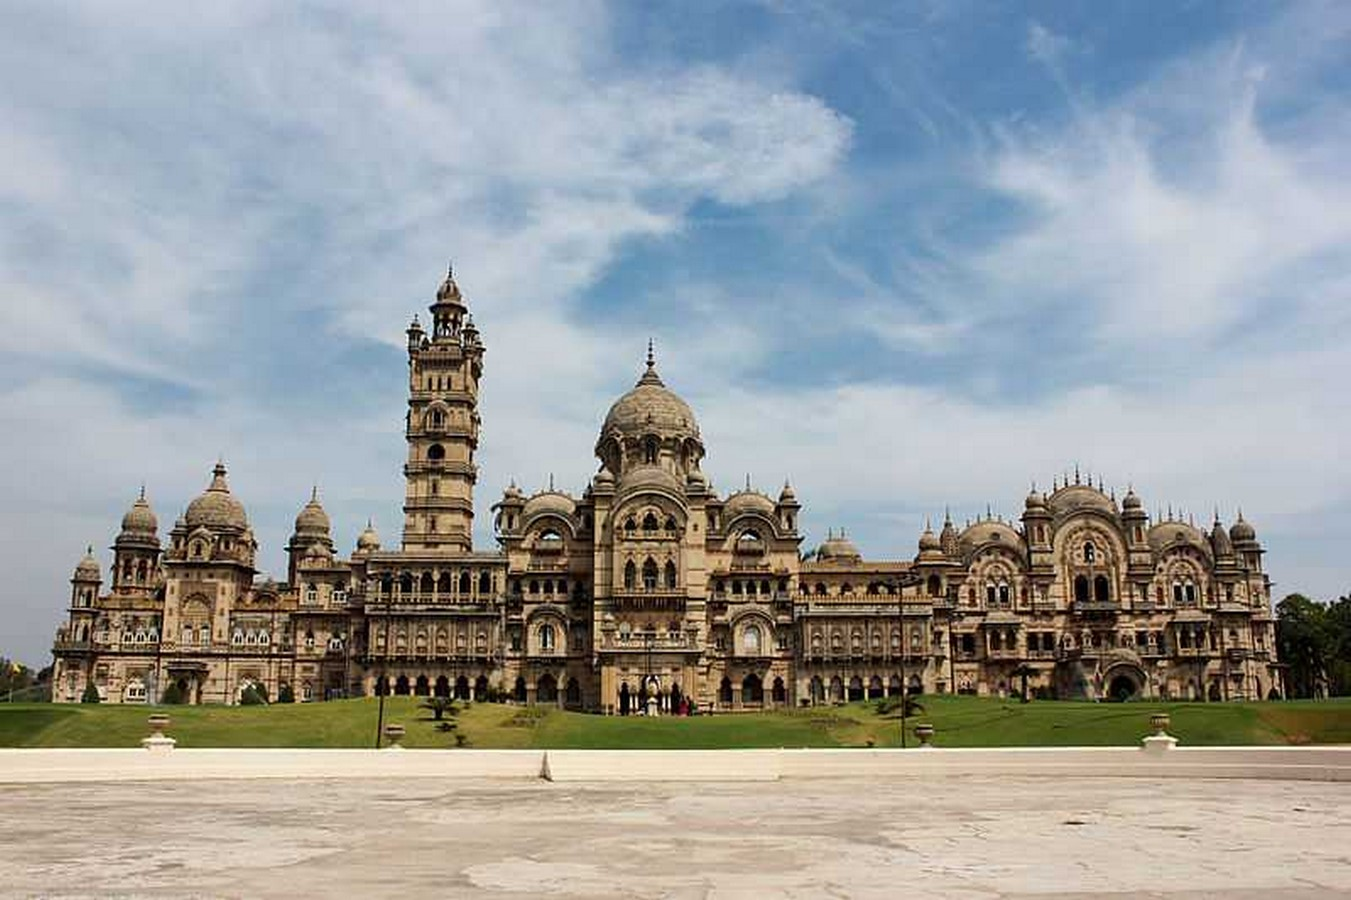 10 Historical buildings in India where architecture reflects ancient stories - Sheet4